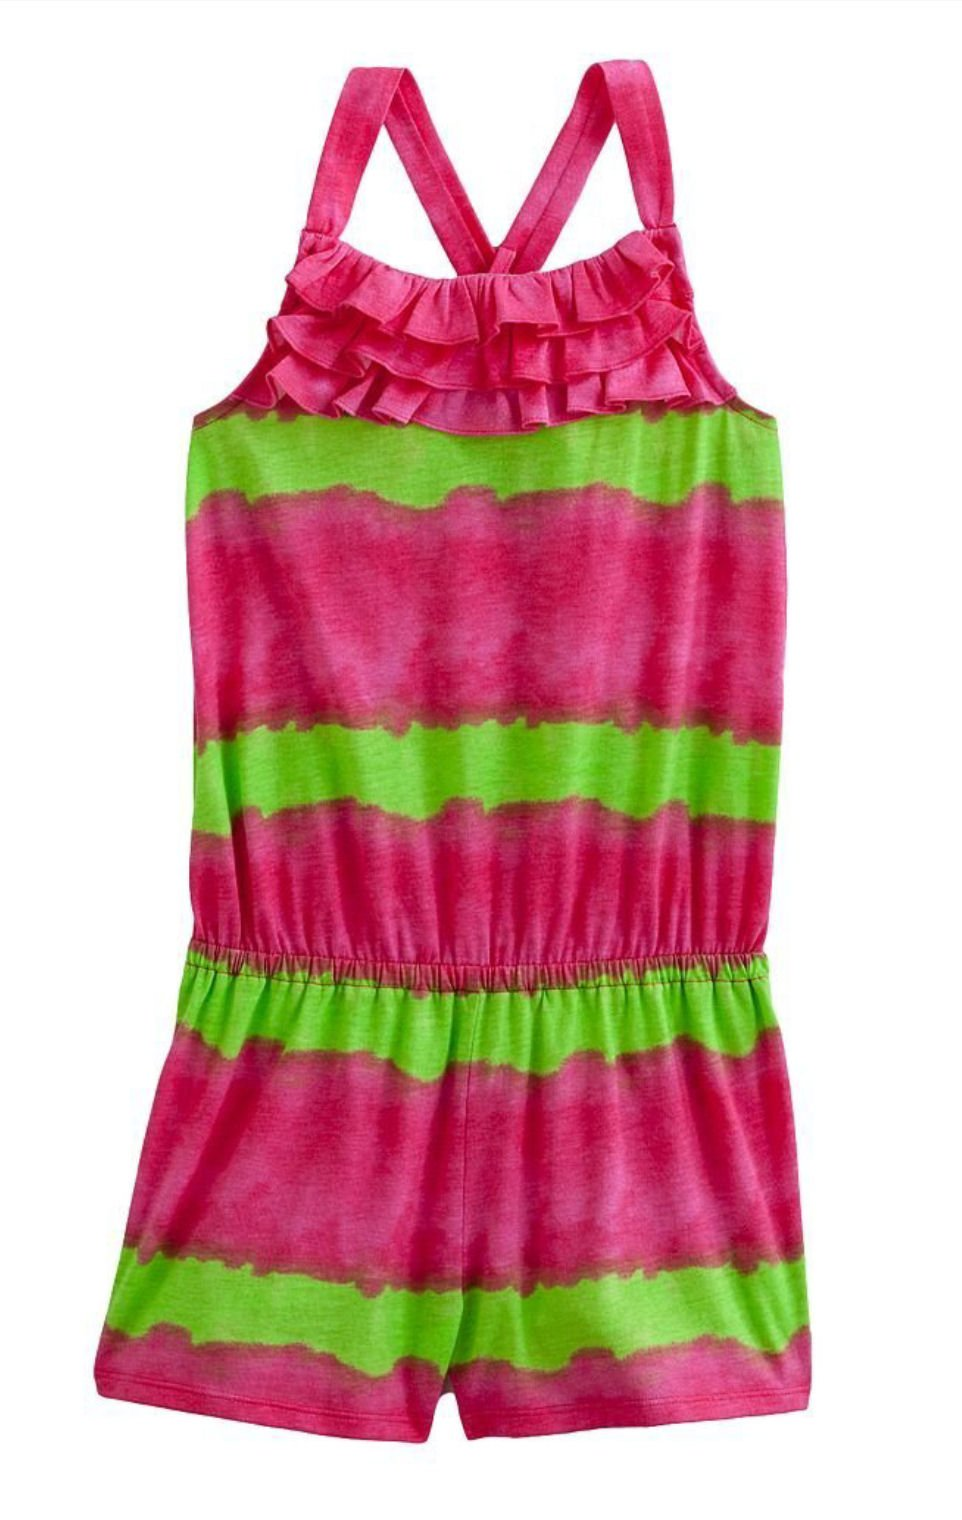 Chaps Little Girls Water Color Ruffle Romper 4 Pink Green